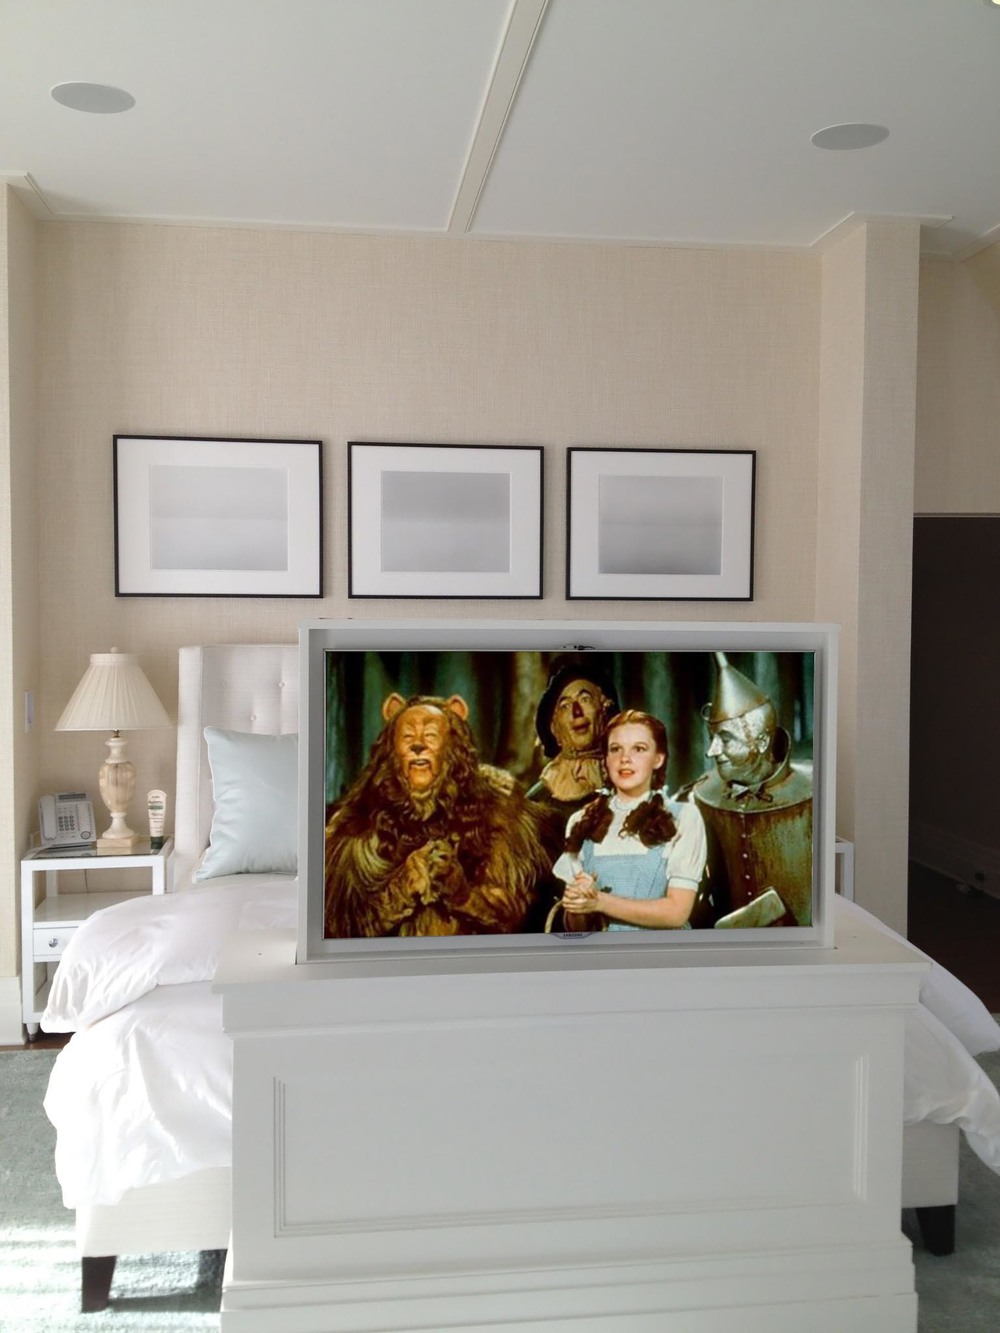 Motorized Television Lift Double Sided.jpg